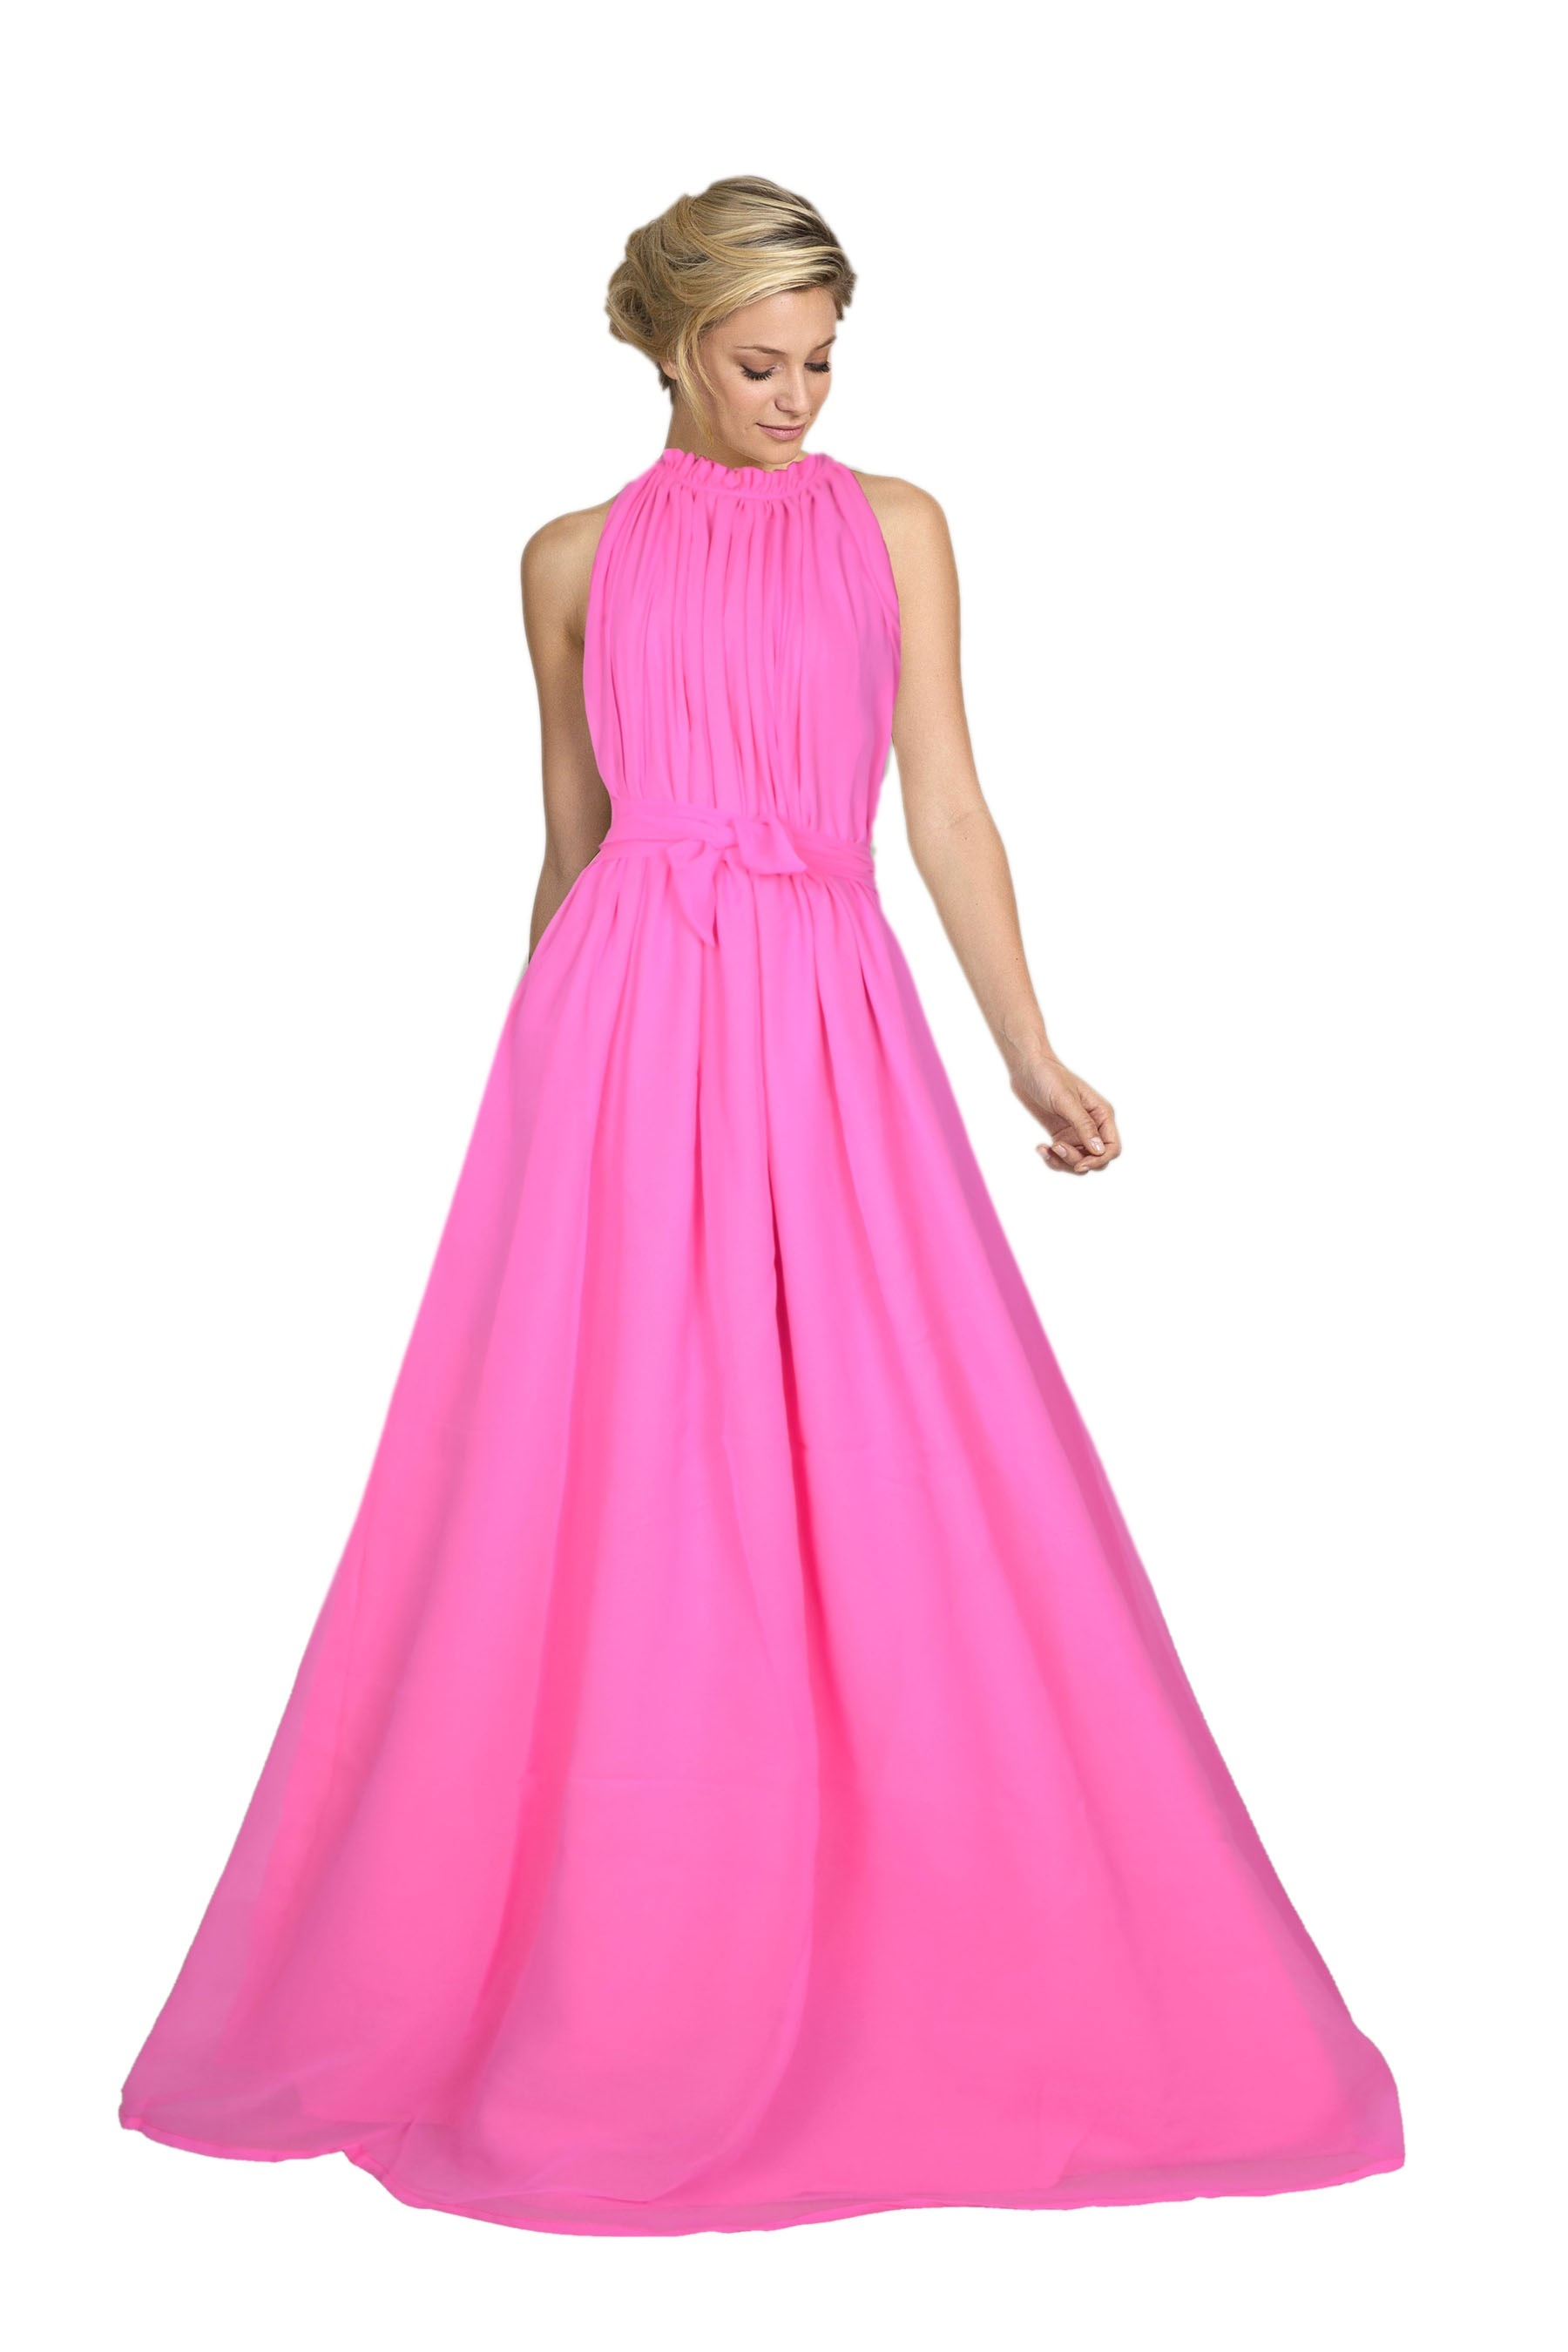 Georgette Party Wear Baby Pink Gown, Size: Medium And XL, Rs 549 ...